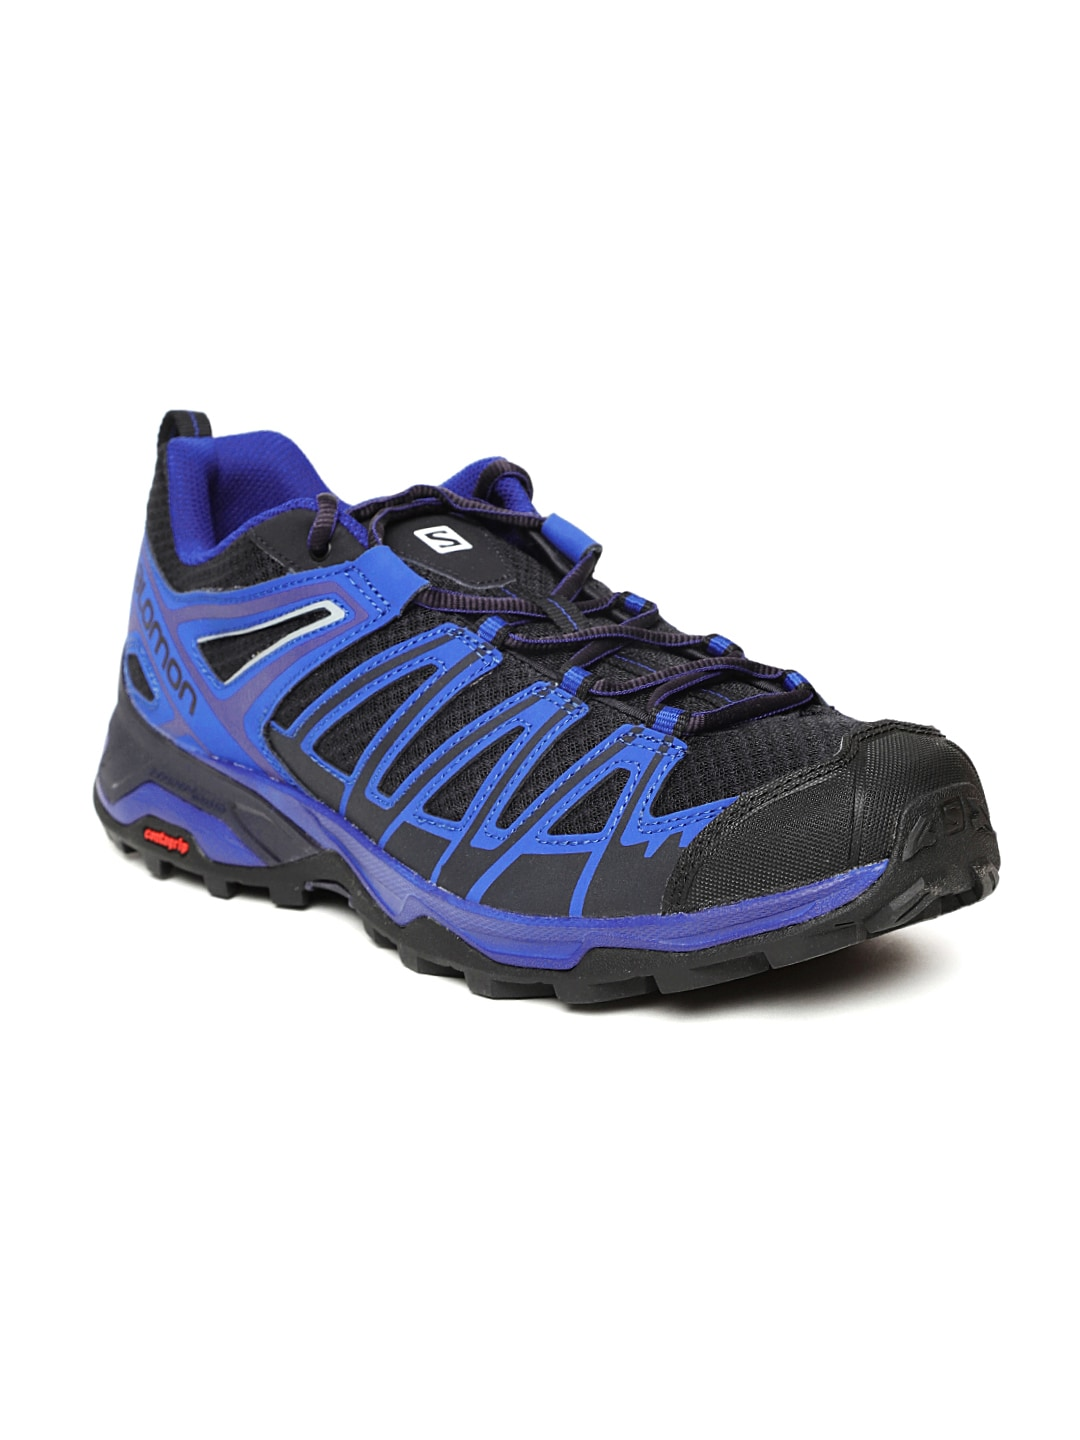 b7c047059629 Football Sports Shoes - Buy Football Sports Shoes Online in India